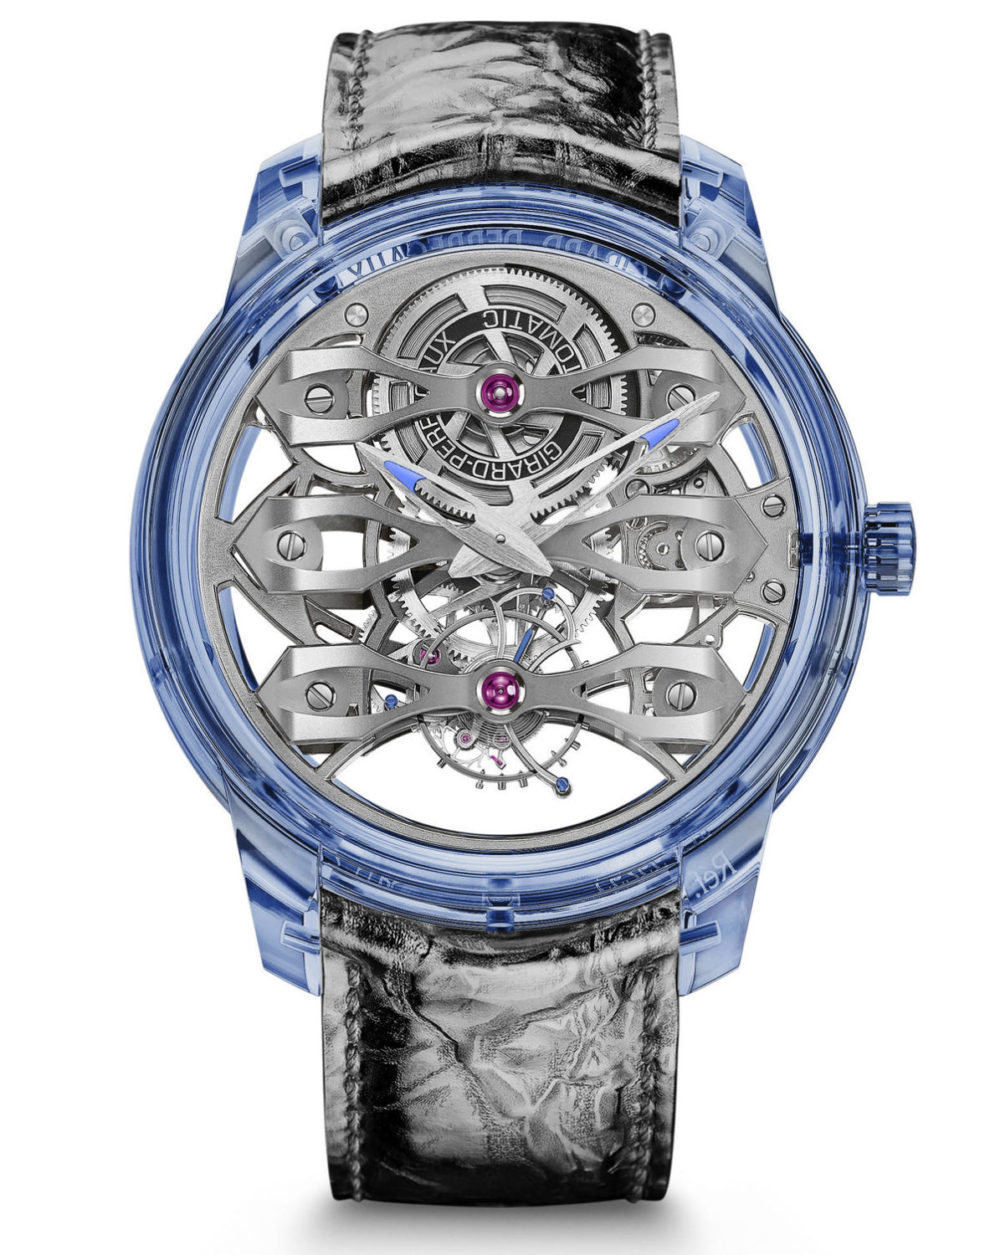 The Girard-Perregaux Quasar Azure watch is limited to just 8 pieces